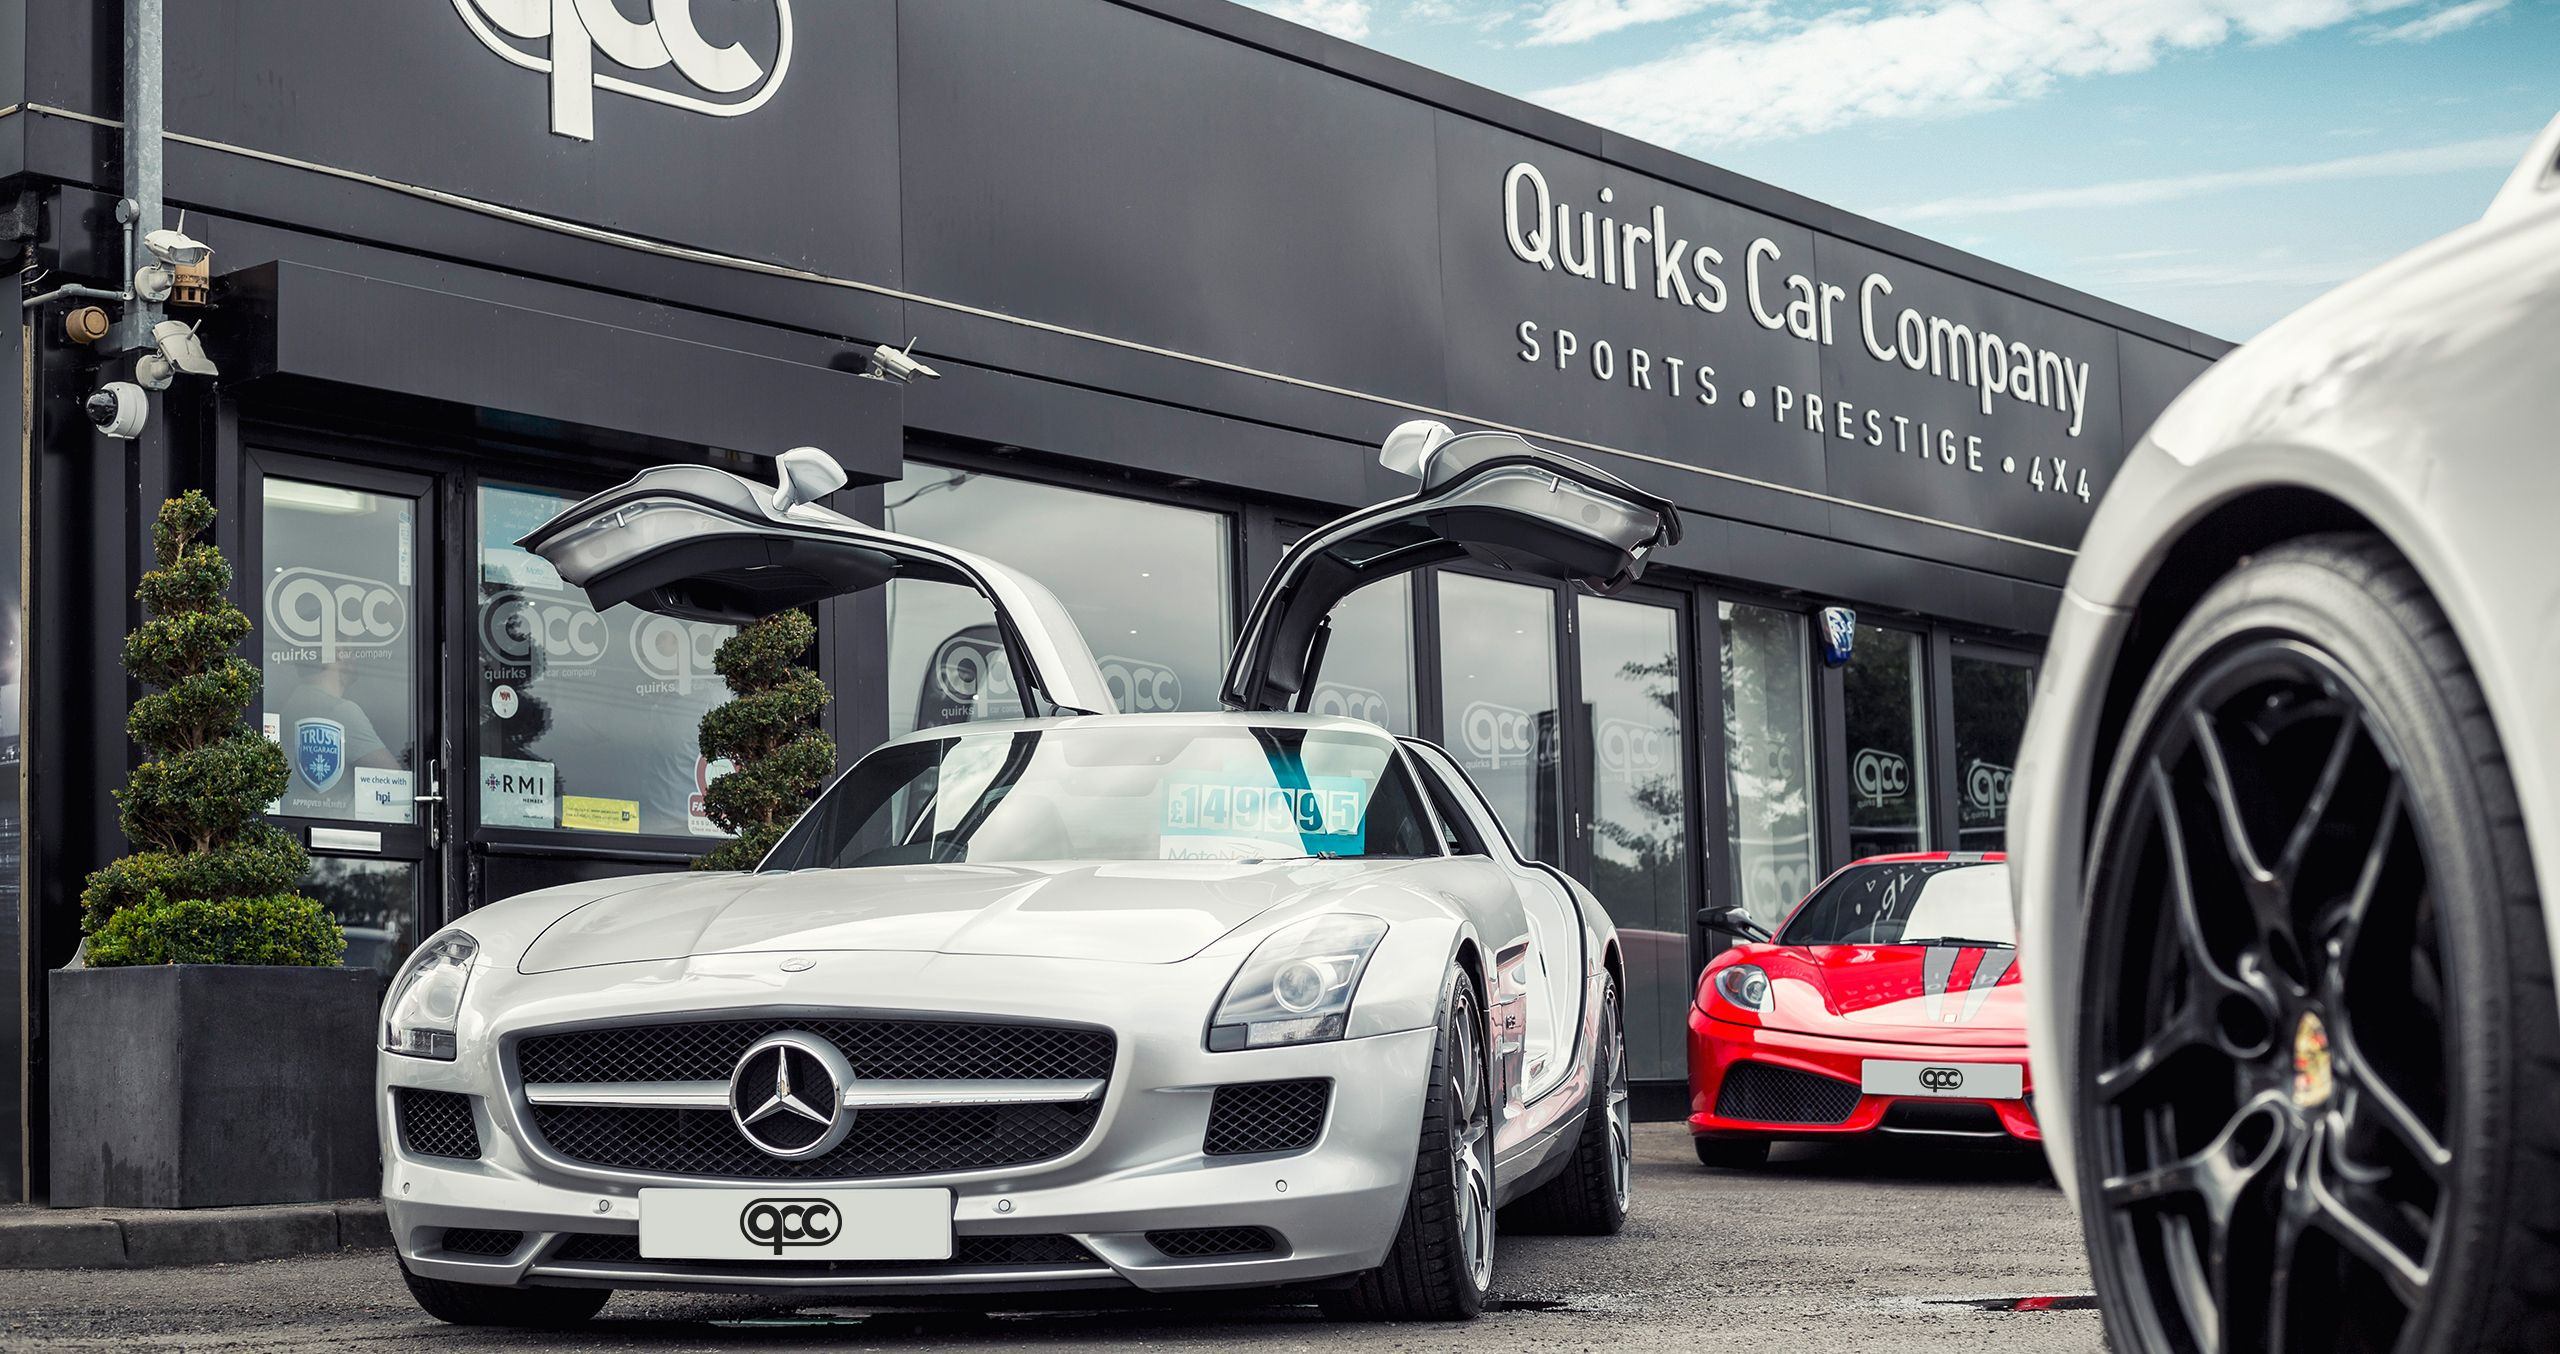 Cars Sale Essex Unique Sports Cars Prestige and 4×4 Vehicles